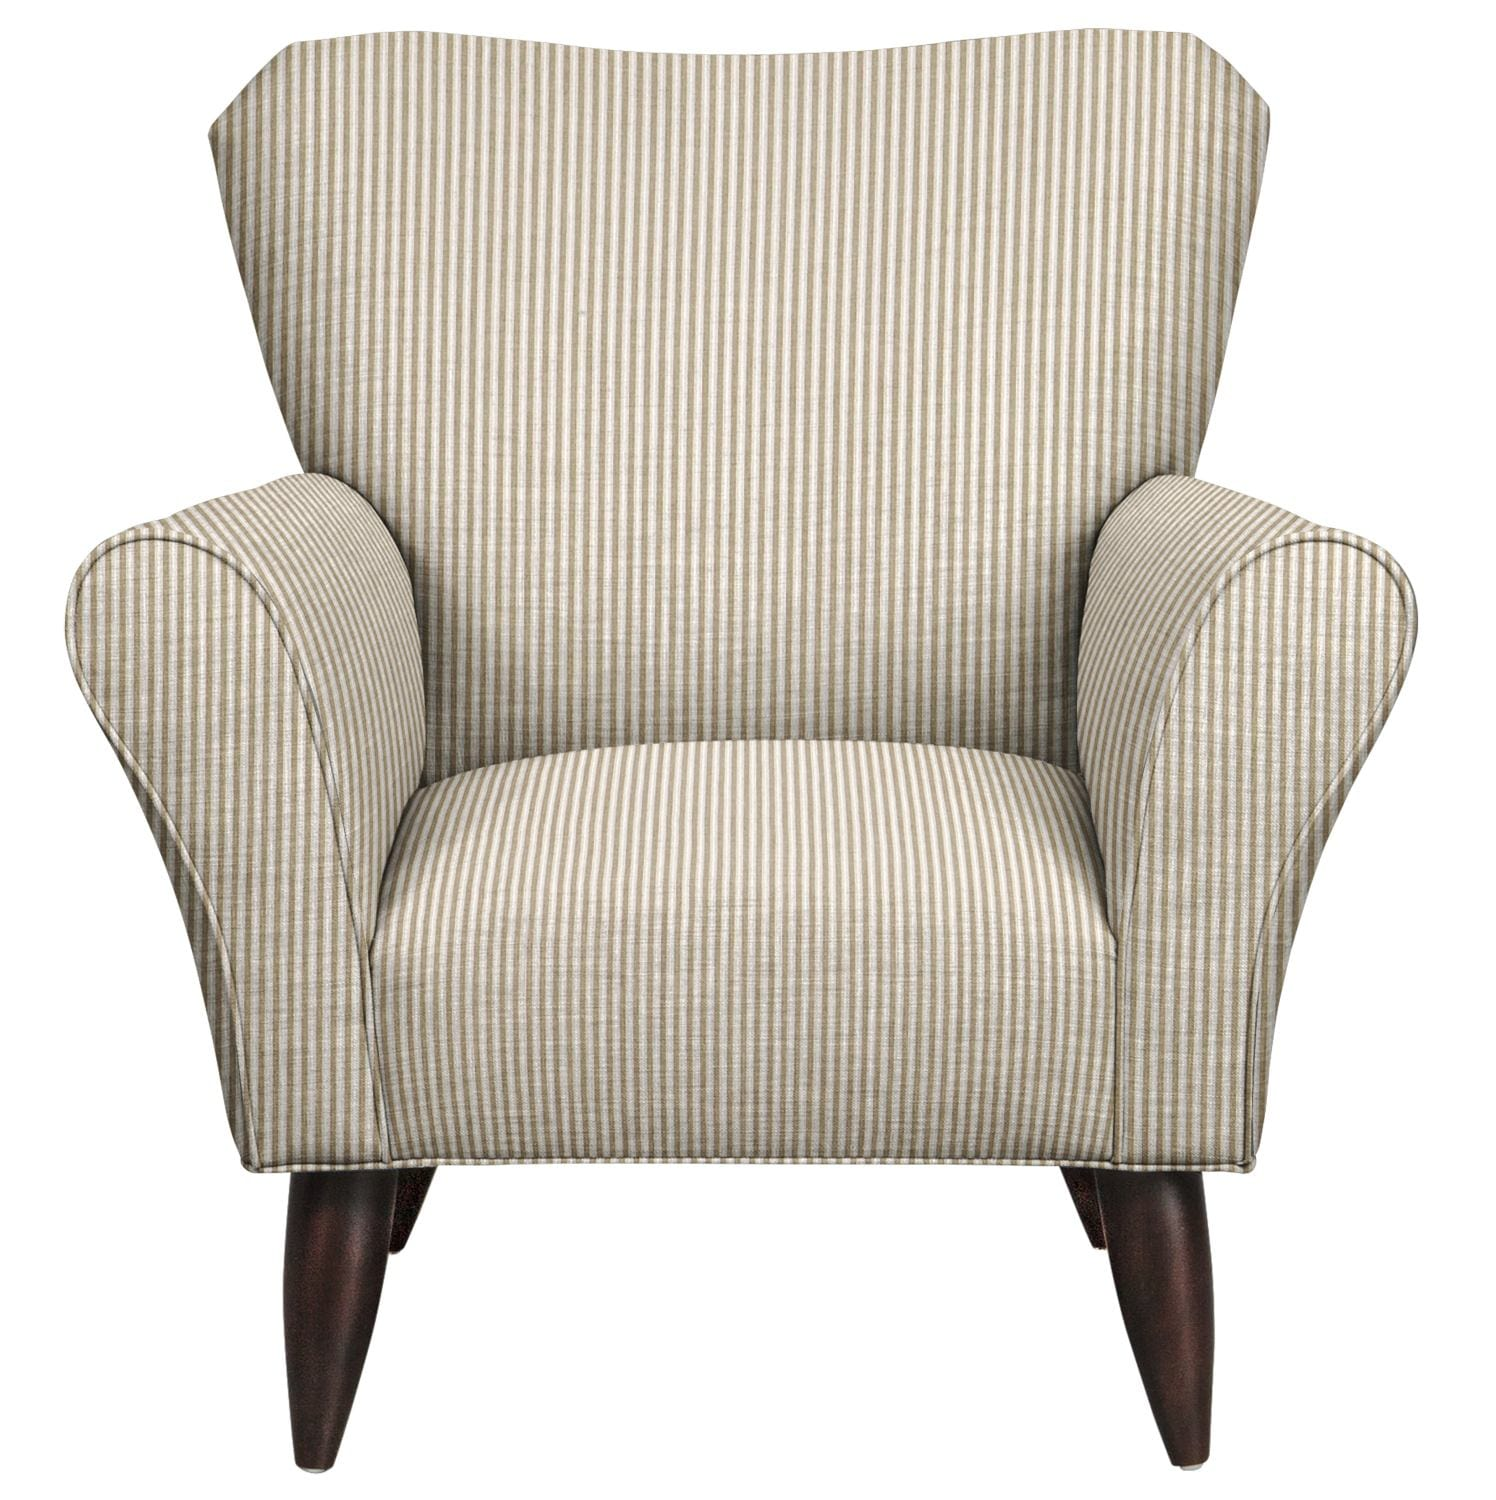 Living Room Furniture - Jessie Chair w/ Polo Linen Fabric